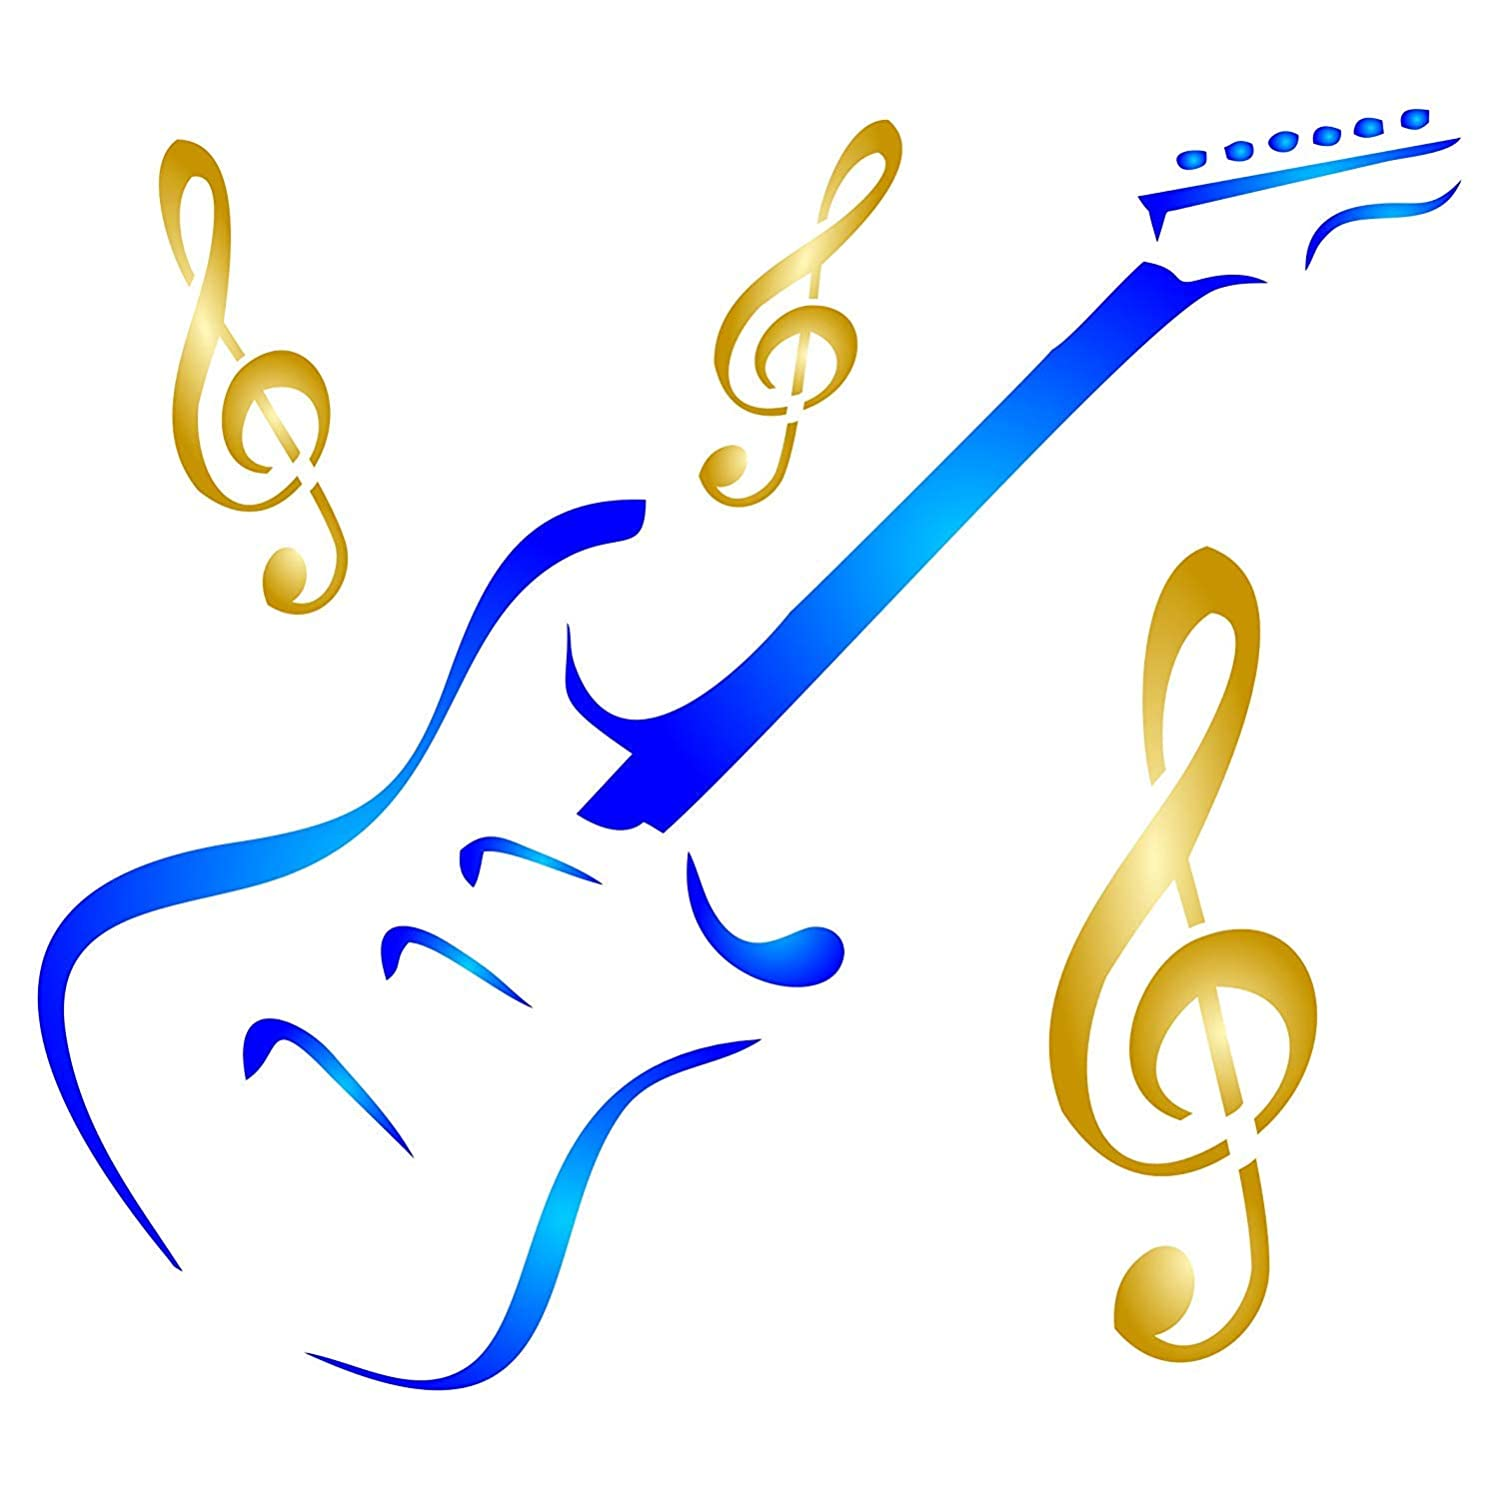 Guitar Stencil - 5 x 4.5 inch (S) - Reusable Musical Instrument Treble Clef Music Stencils for Painting - Use on Paper Projects Scrapbook Journal Walls Floors Fabric Furniture Glass Wood etc.